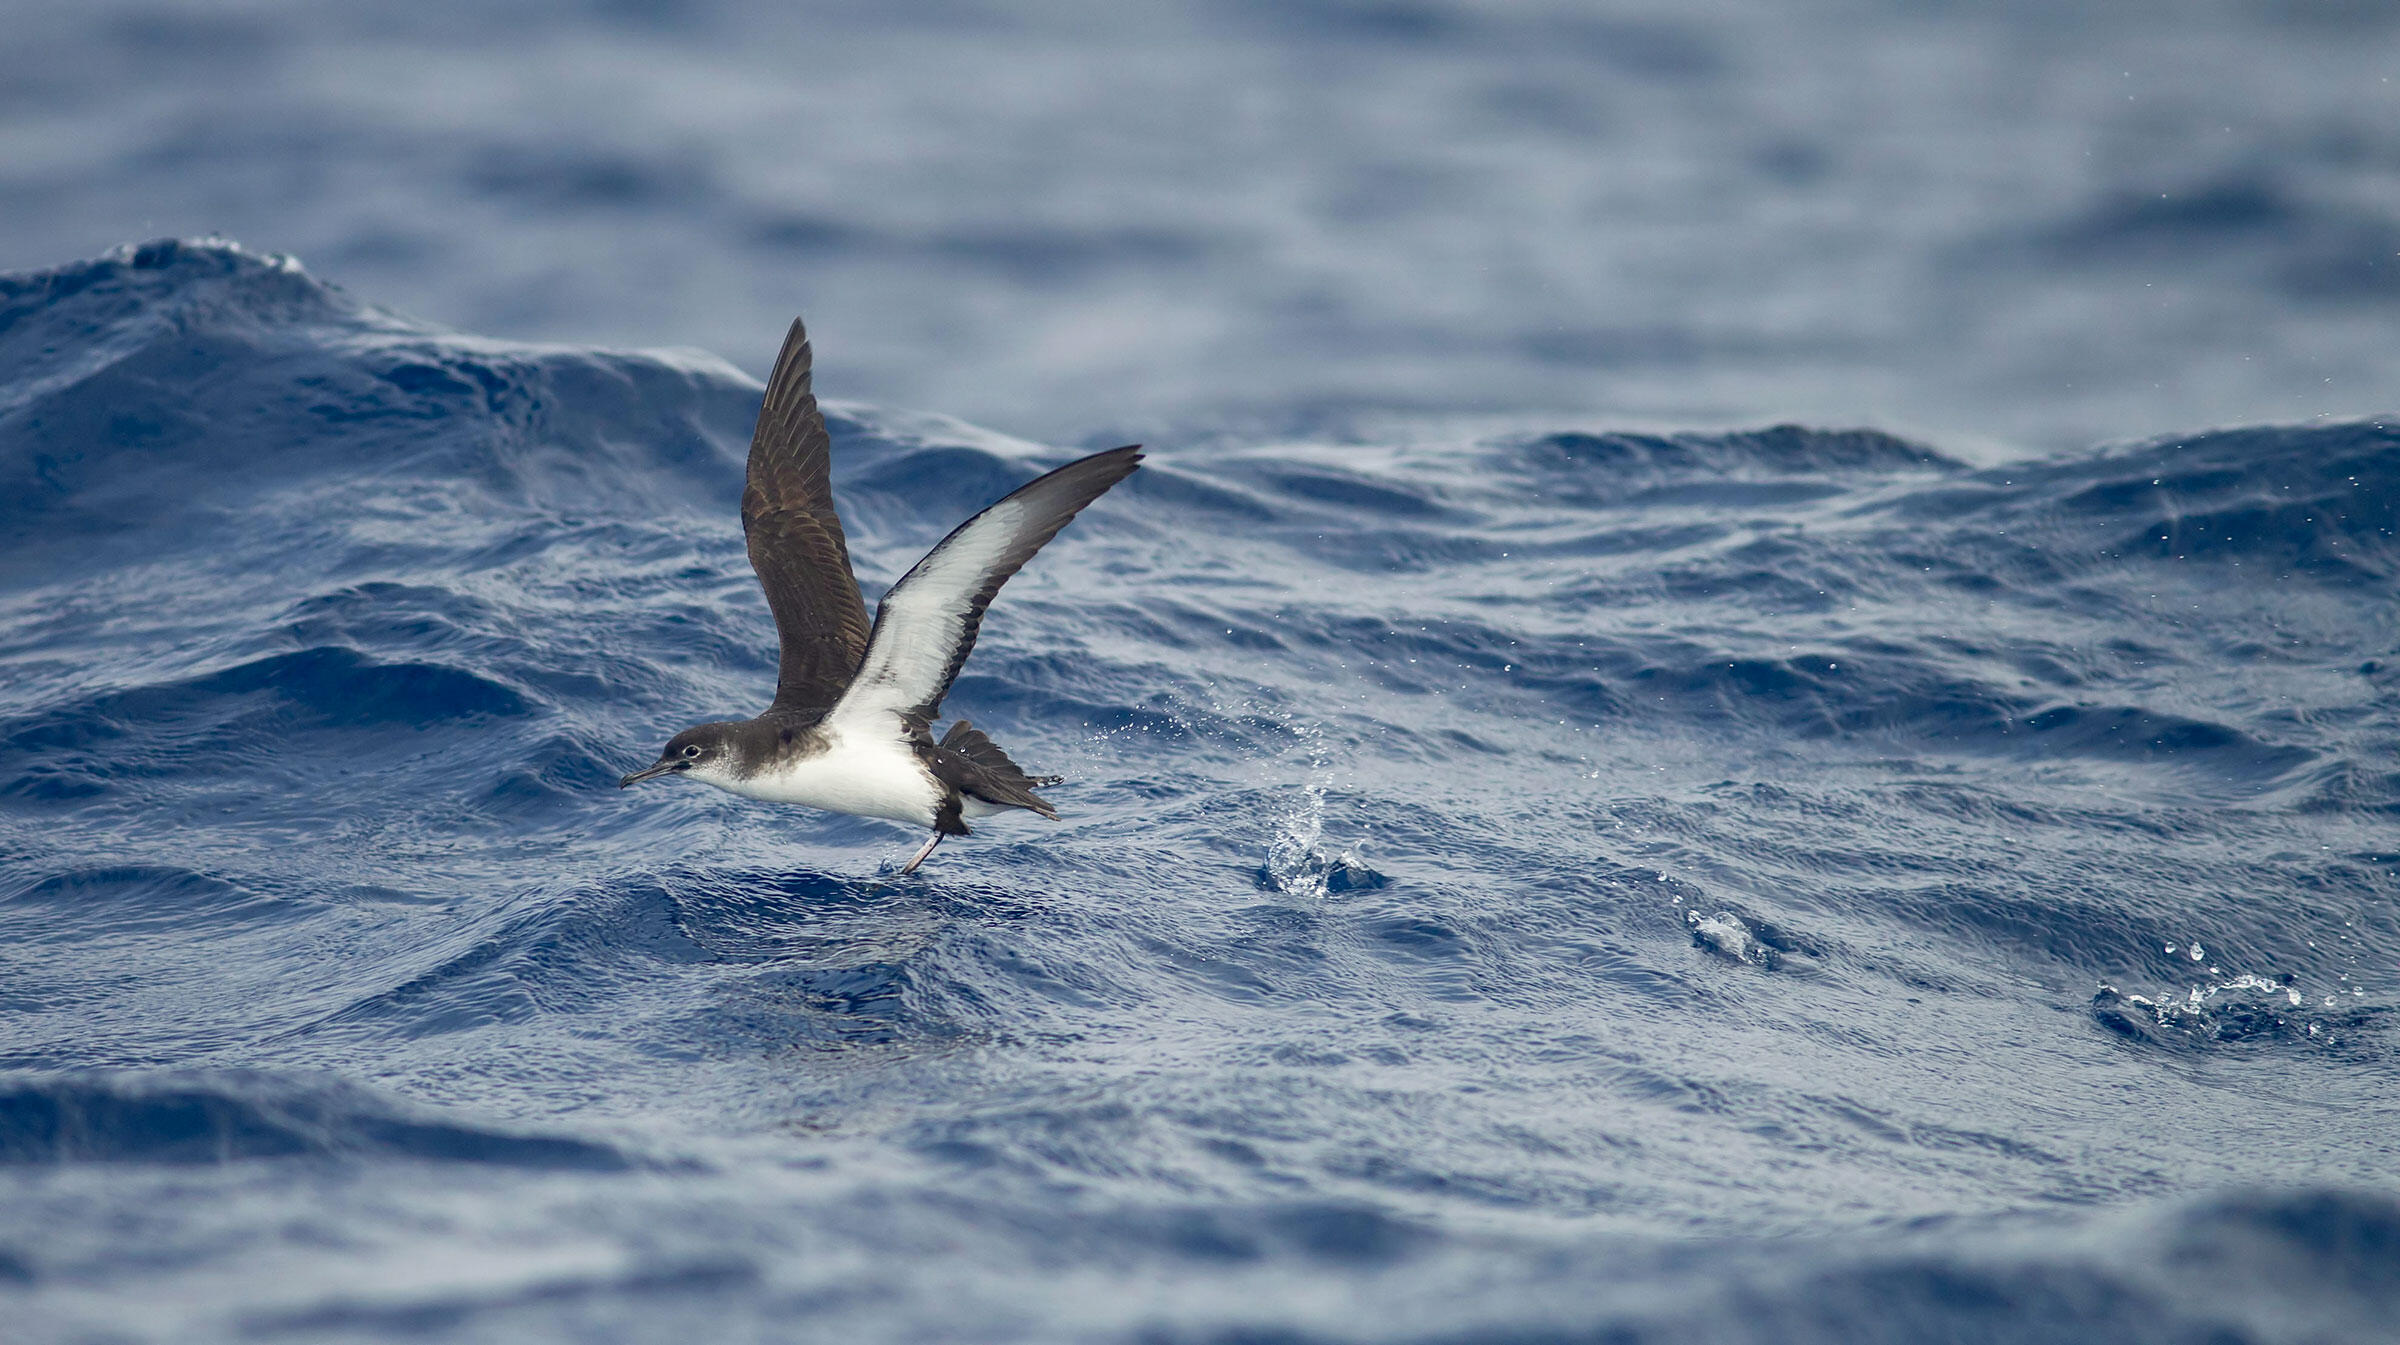 Manx Shearwaters often overshoot their destination of Cape Horn, Chile, and end up in the Pacific rather than the Atlantic. As a result, there have been more and more sightings on the West Coast. George Reszeter/Alamy